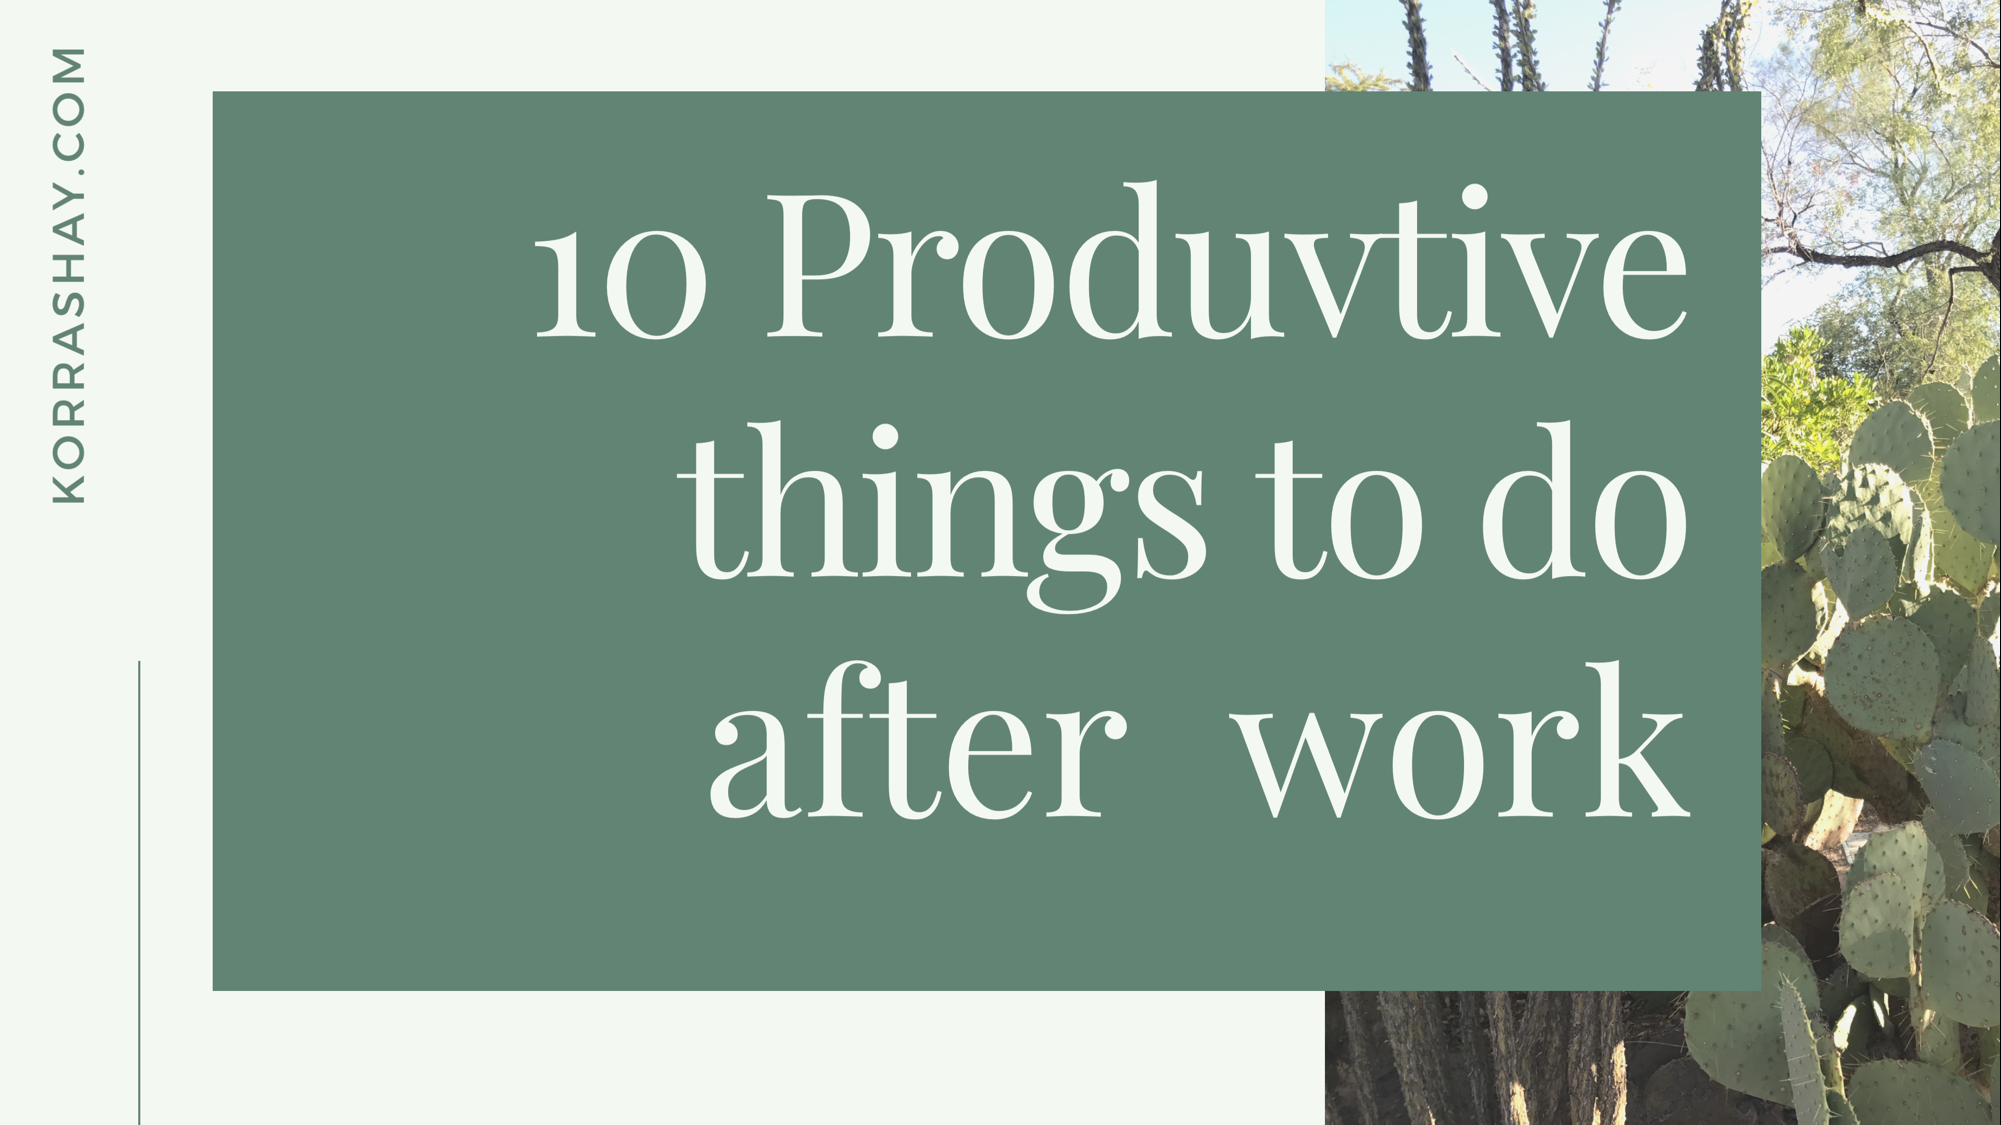 10 productive things to do after work